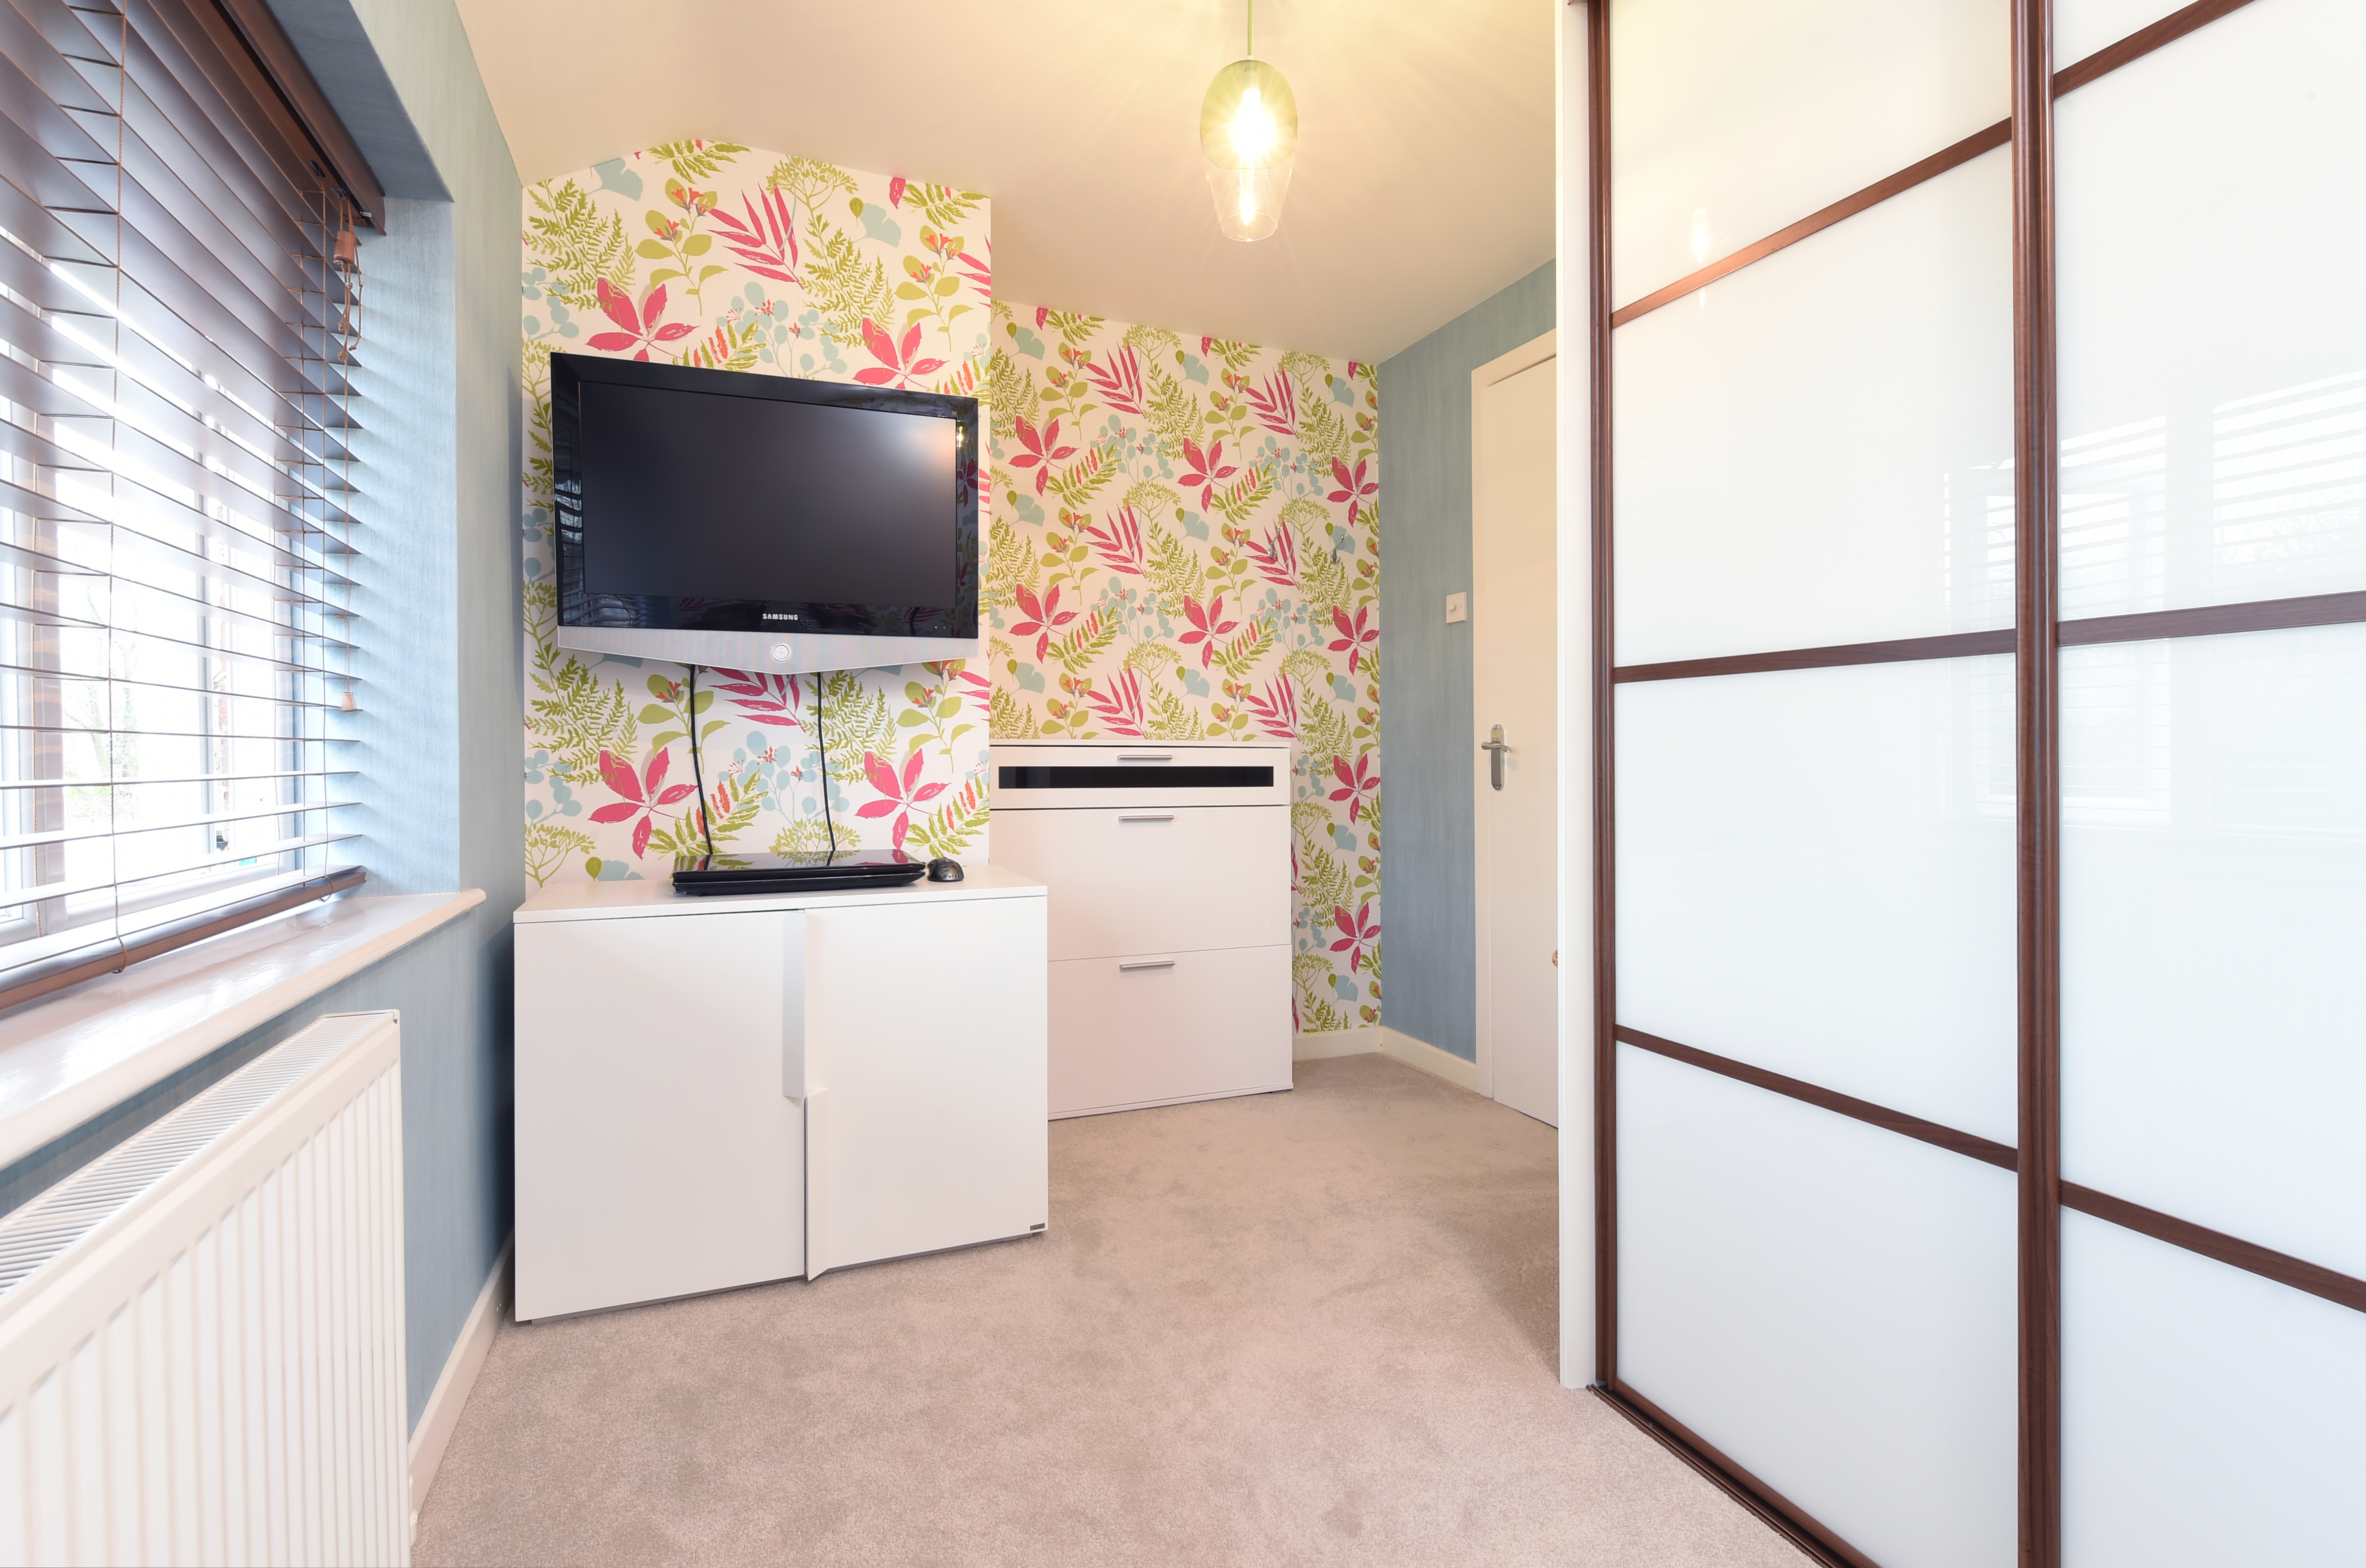 We Can Help You Select Solutions That Work With The Room In Terms Of Both Style And Personality Storage Is Key For Maintaining Order